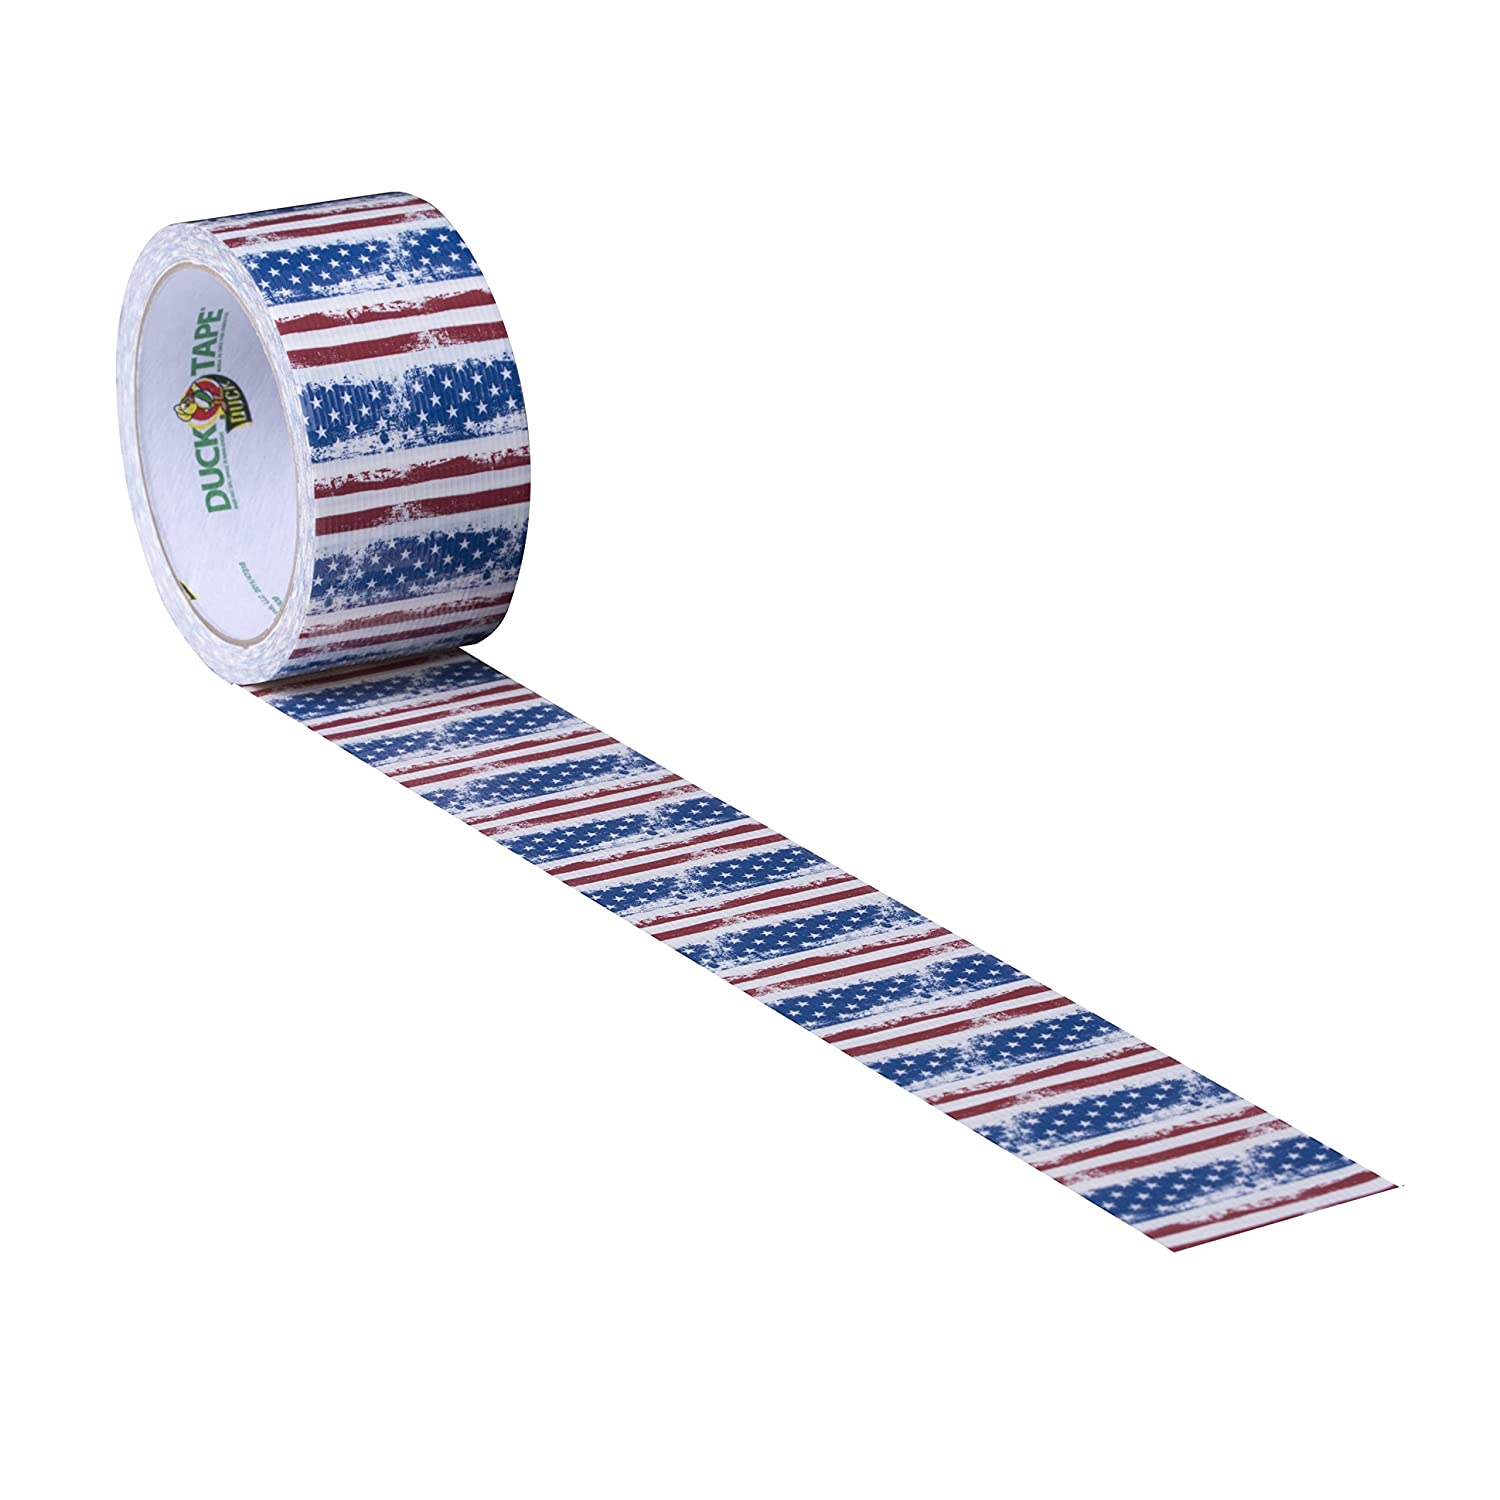 1.88 Inches x 10 Yards Single Roll Duck Brand 1379347 Printed Duct Tape Spotted Leopard